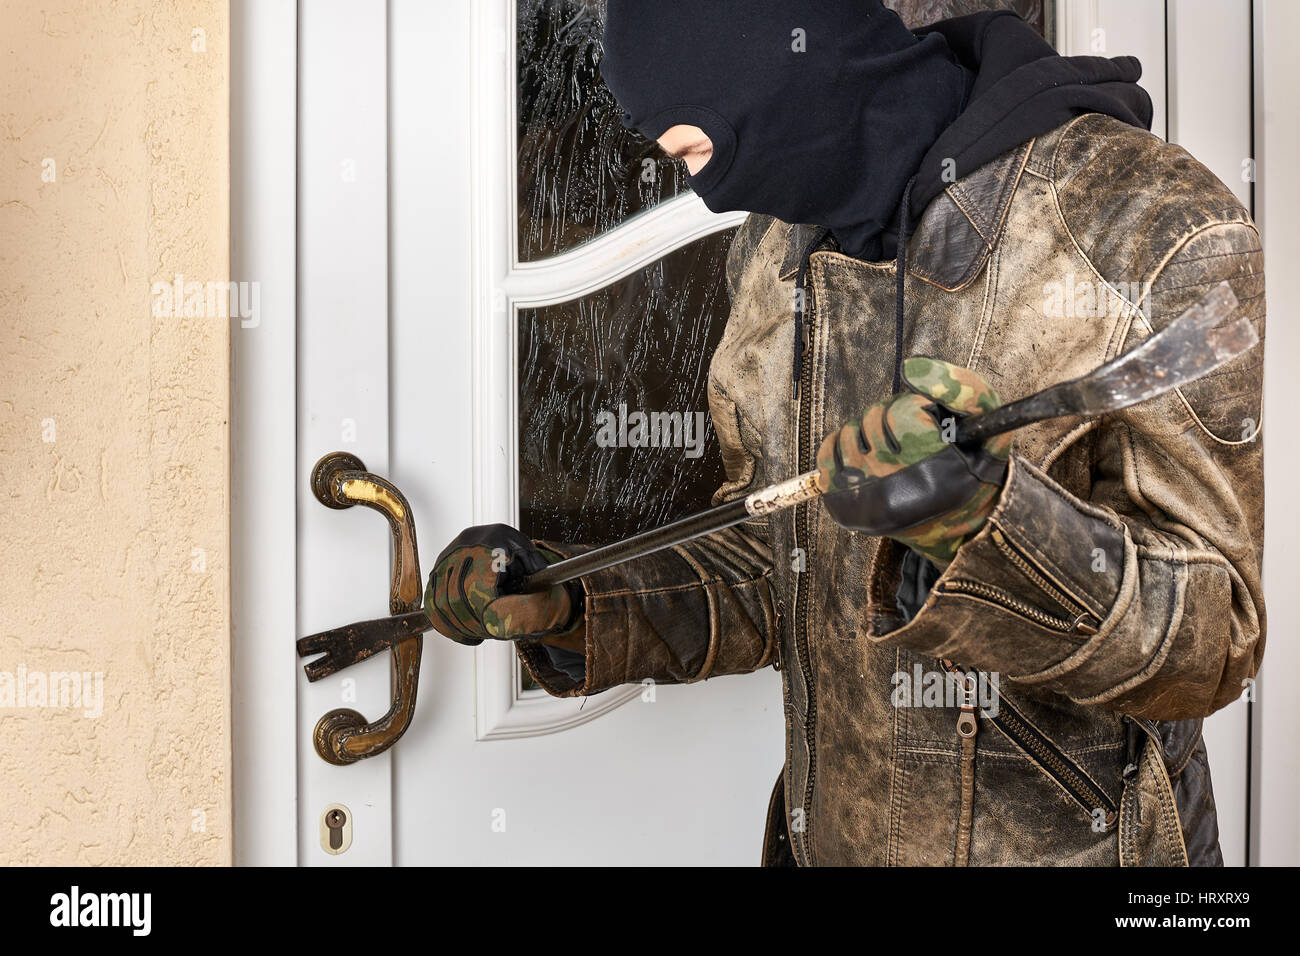 how to break into a house